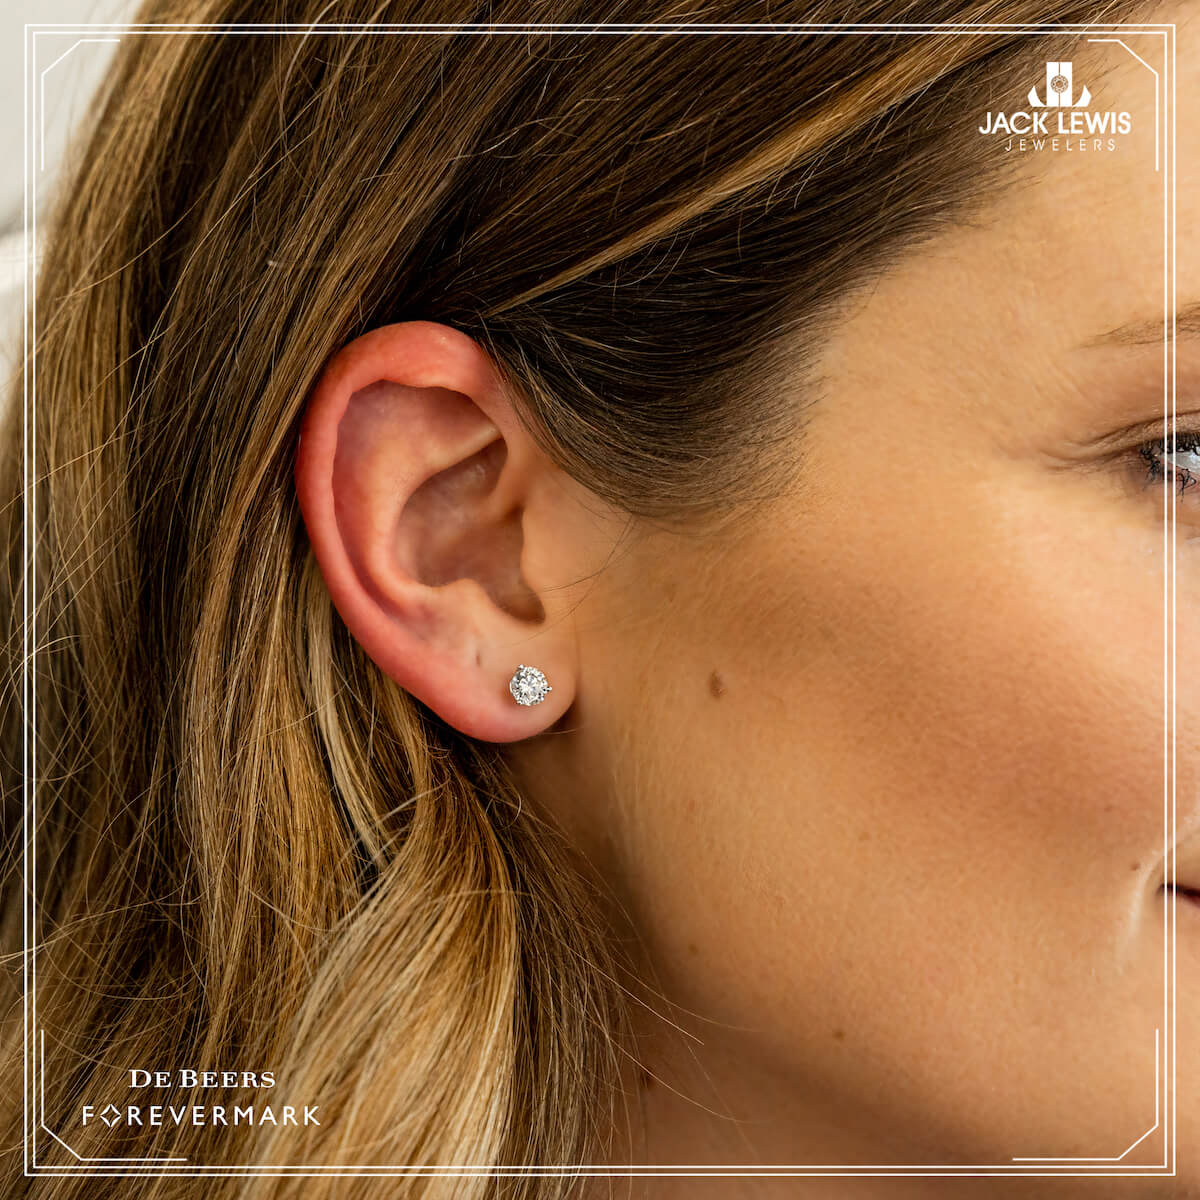 Close up of a diamond stud earring by Debeers Forevermark being worn by a young woman with long brown hair